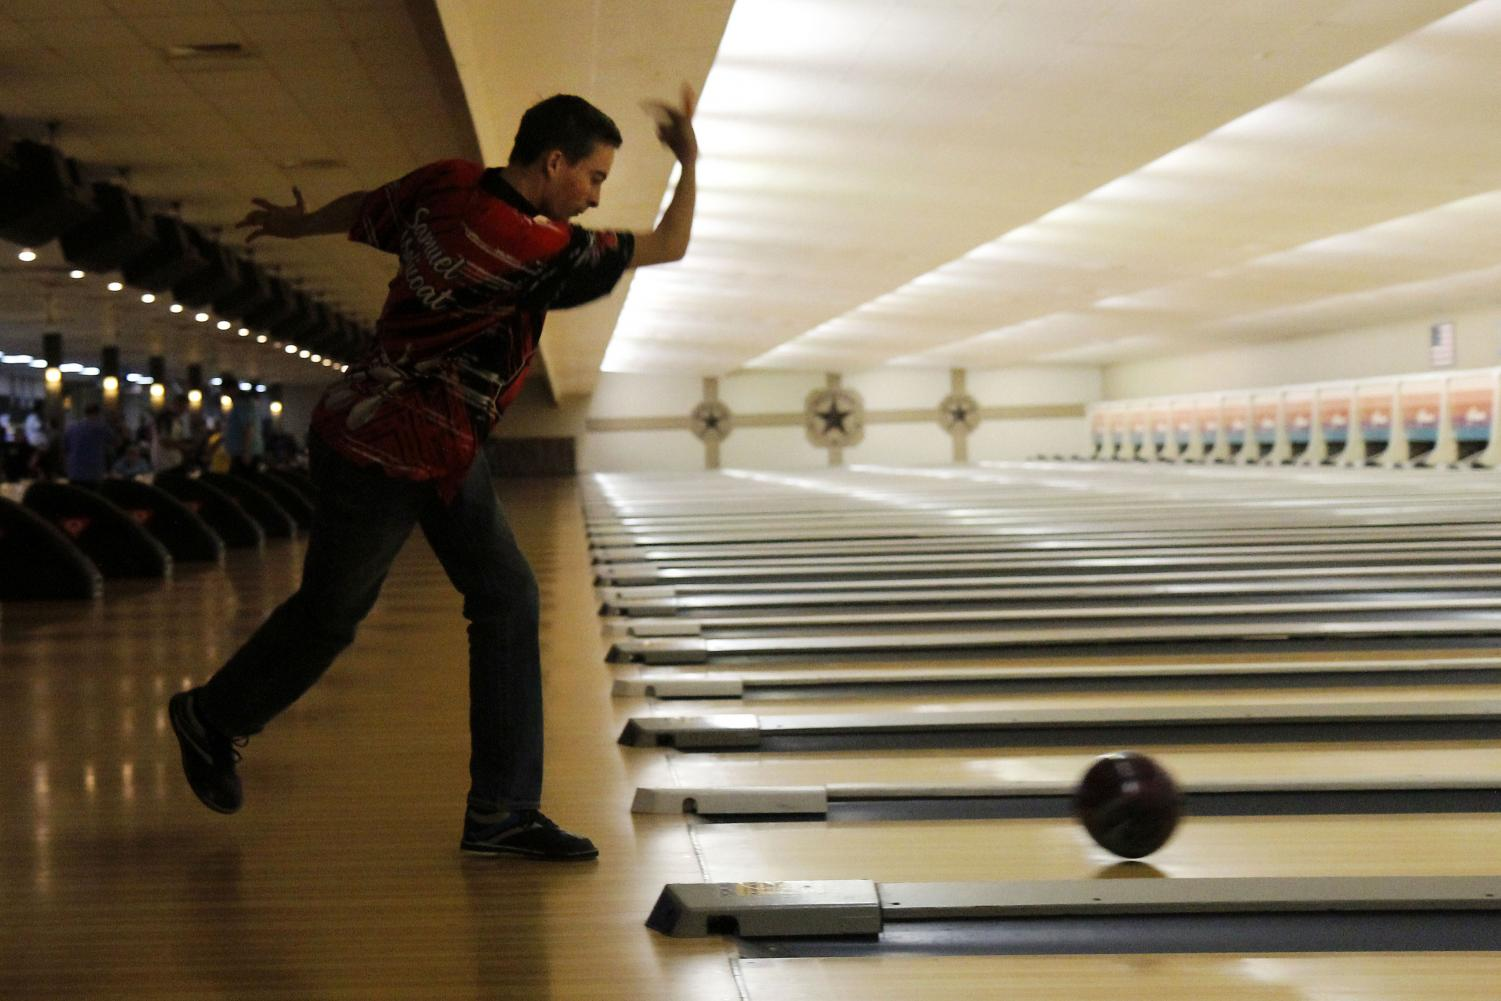 Samuel Malicoat, 11, practices at Forum Bowling Lanes. The bowling team practices every Tuesday and Thursday at Forum.